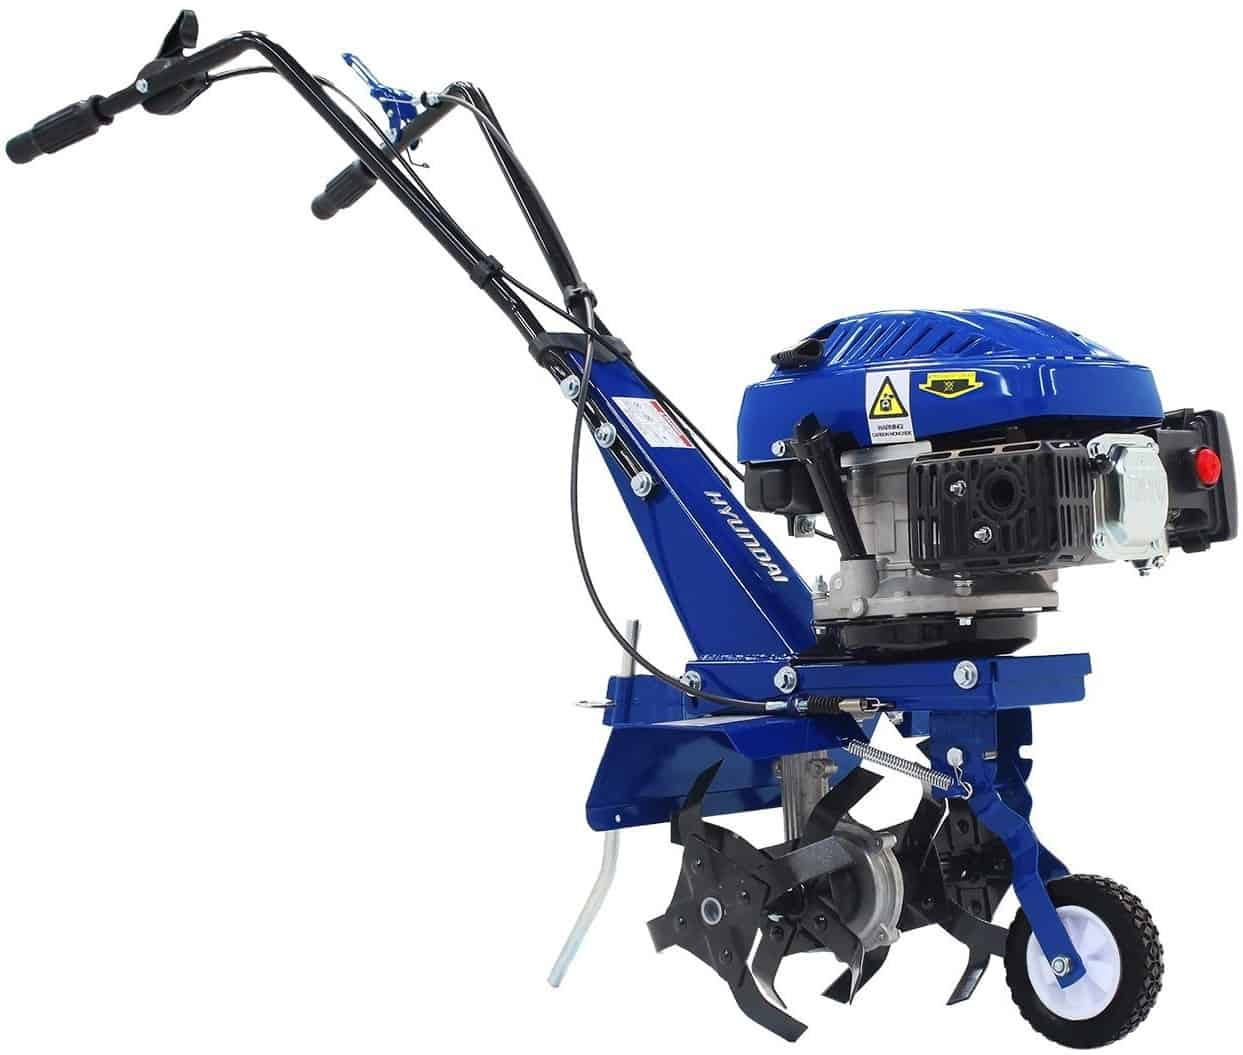 Best Rotavator for Allotment – Hyundai